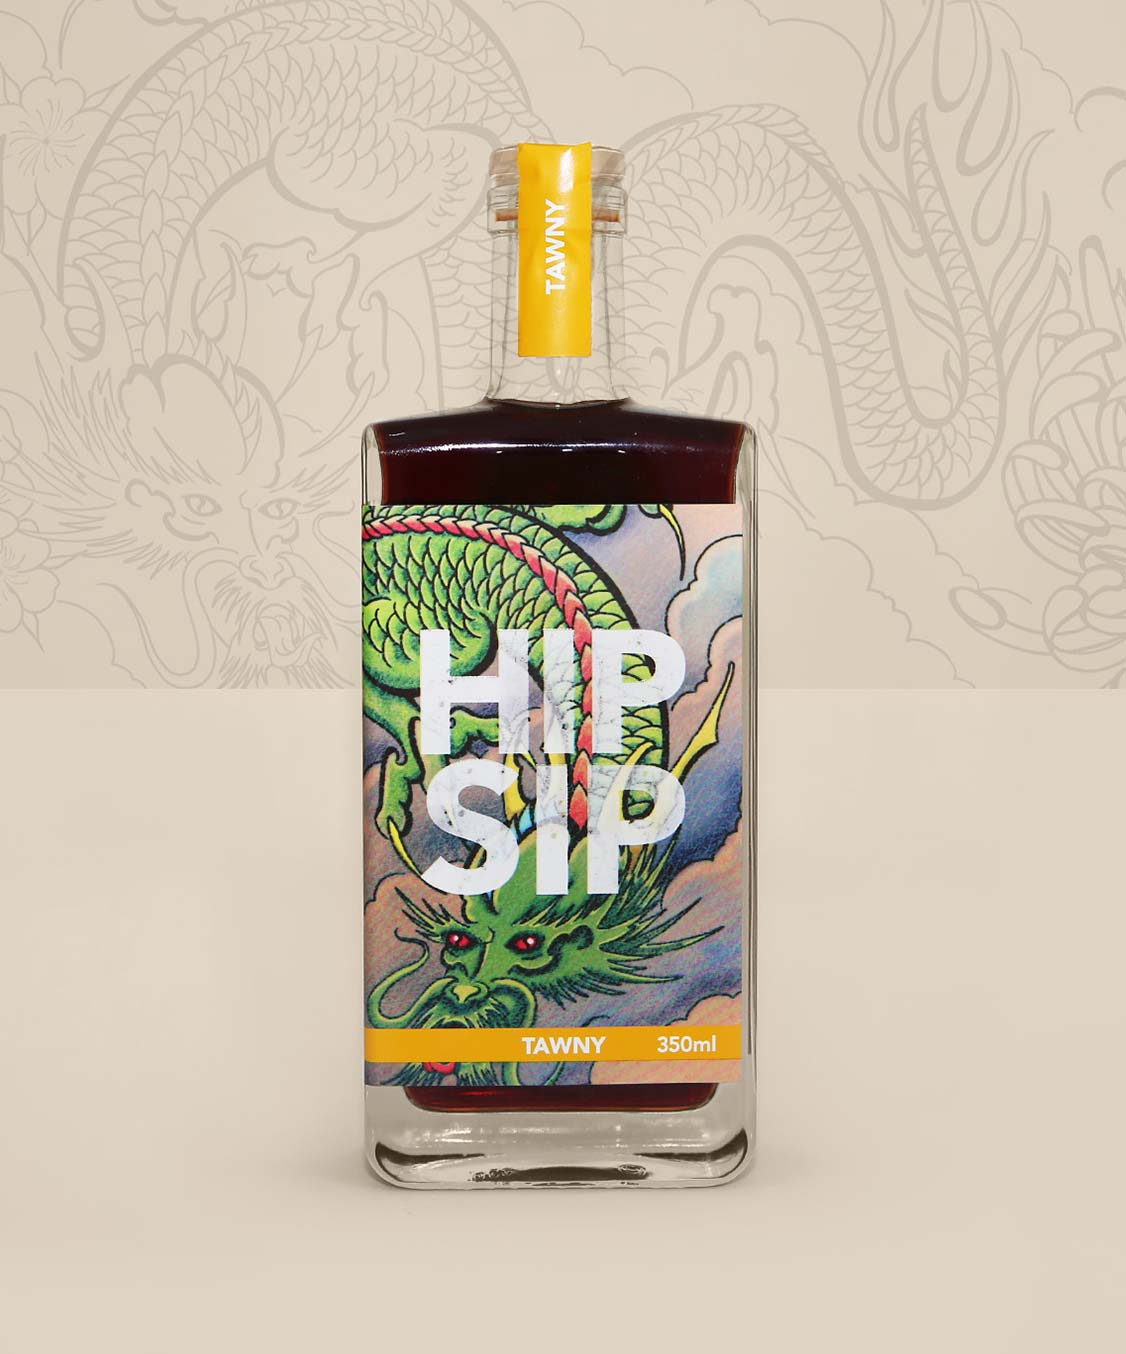 Hip Sip Tawny yellow bottle with tattoo artwork